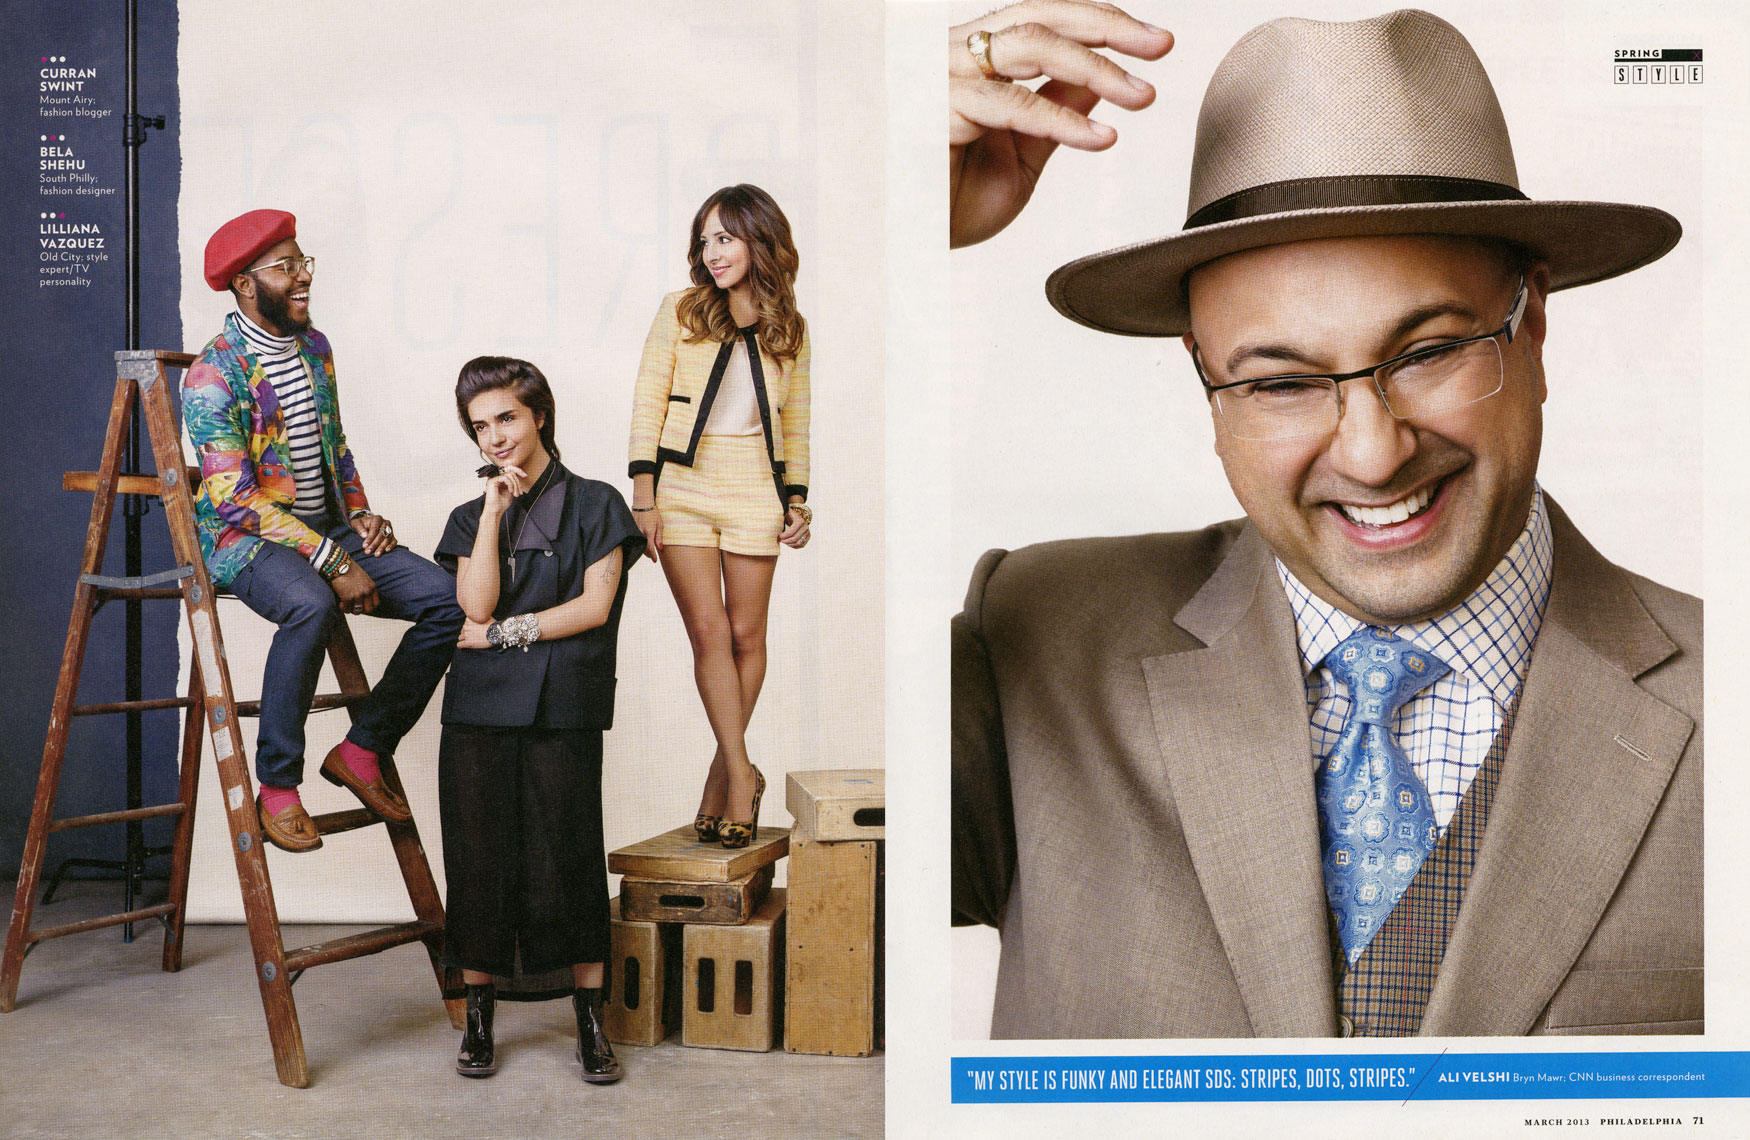 Philadelphia Magazine: FASHION: The Best Dressed List: Curran Swint, Bela Shehu, Lilliana Vazquez and Ali Velshi.  March 2013 issue